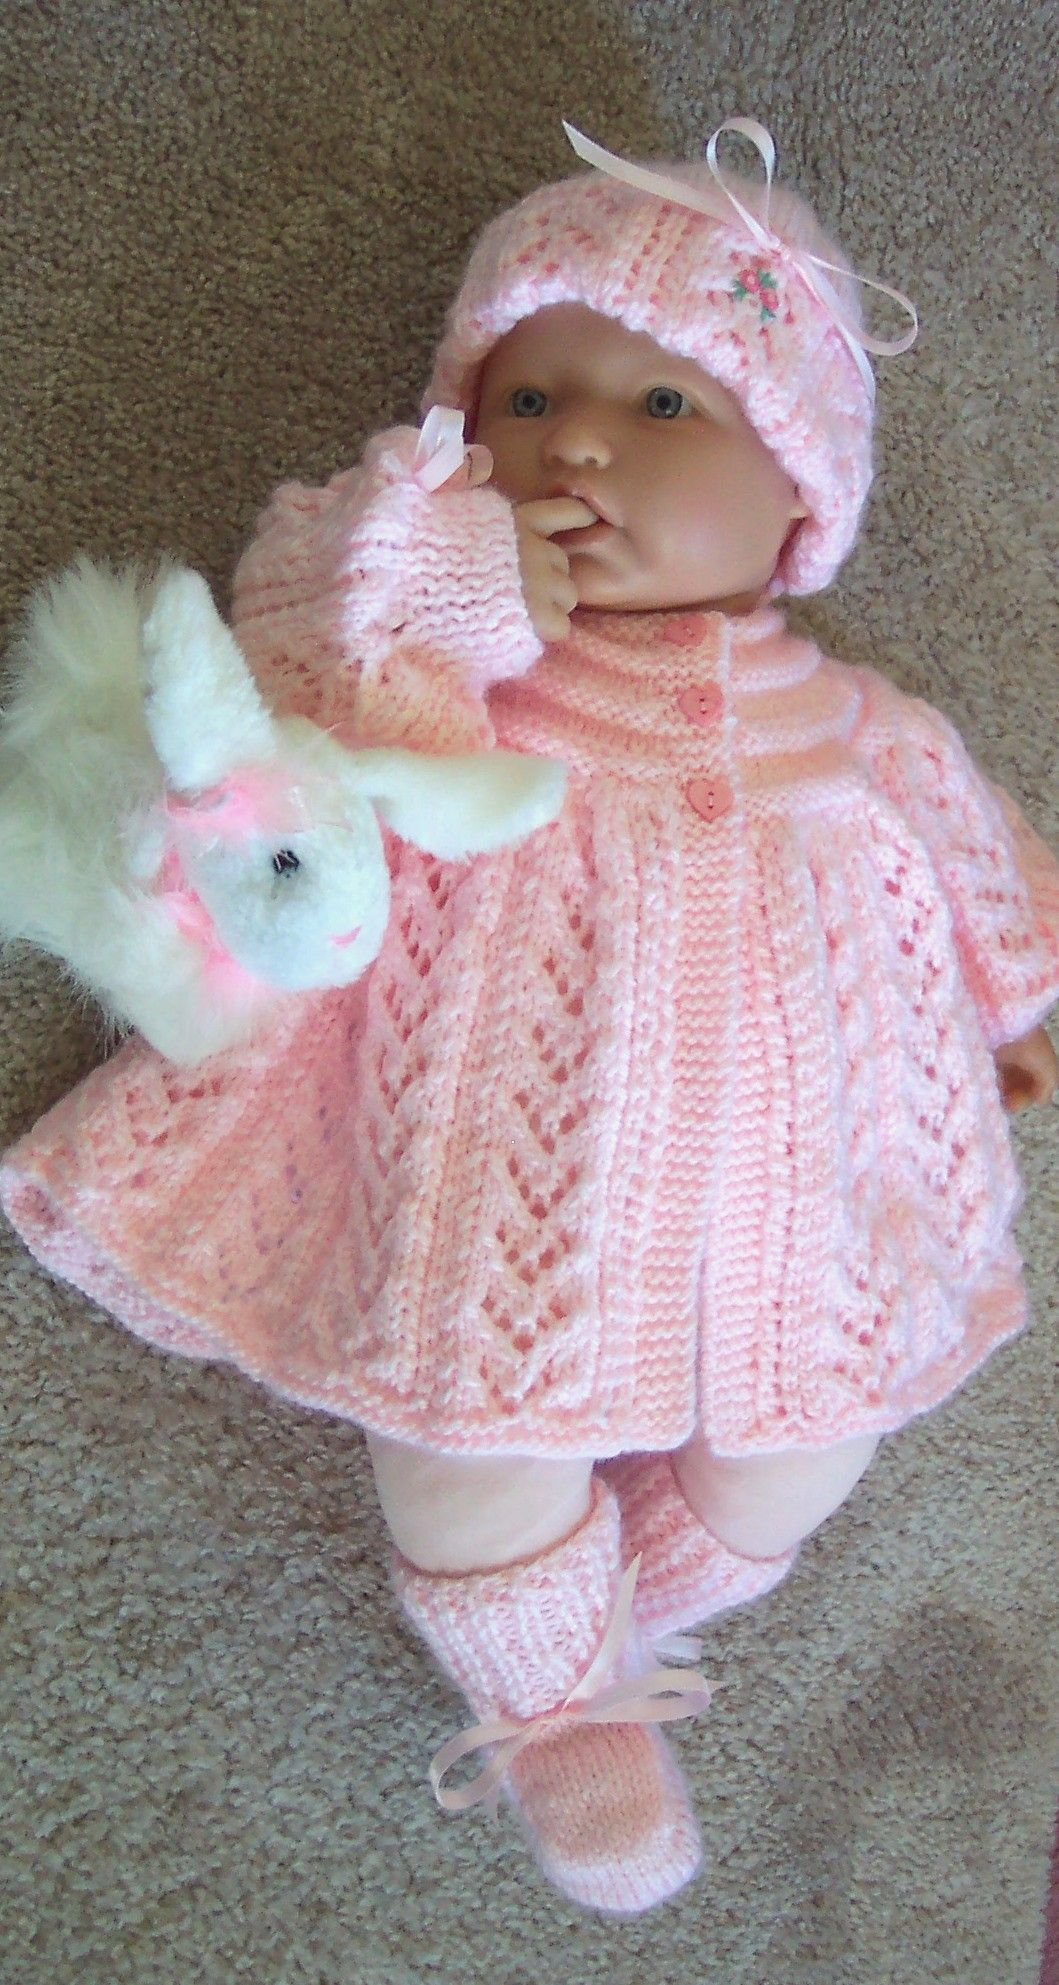 Handmade knit baby girls pink sweater set Beautiful lace pattern